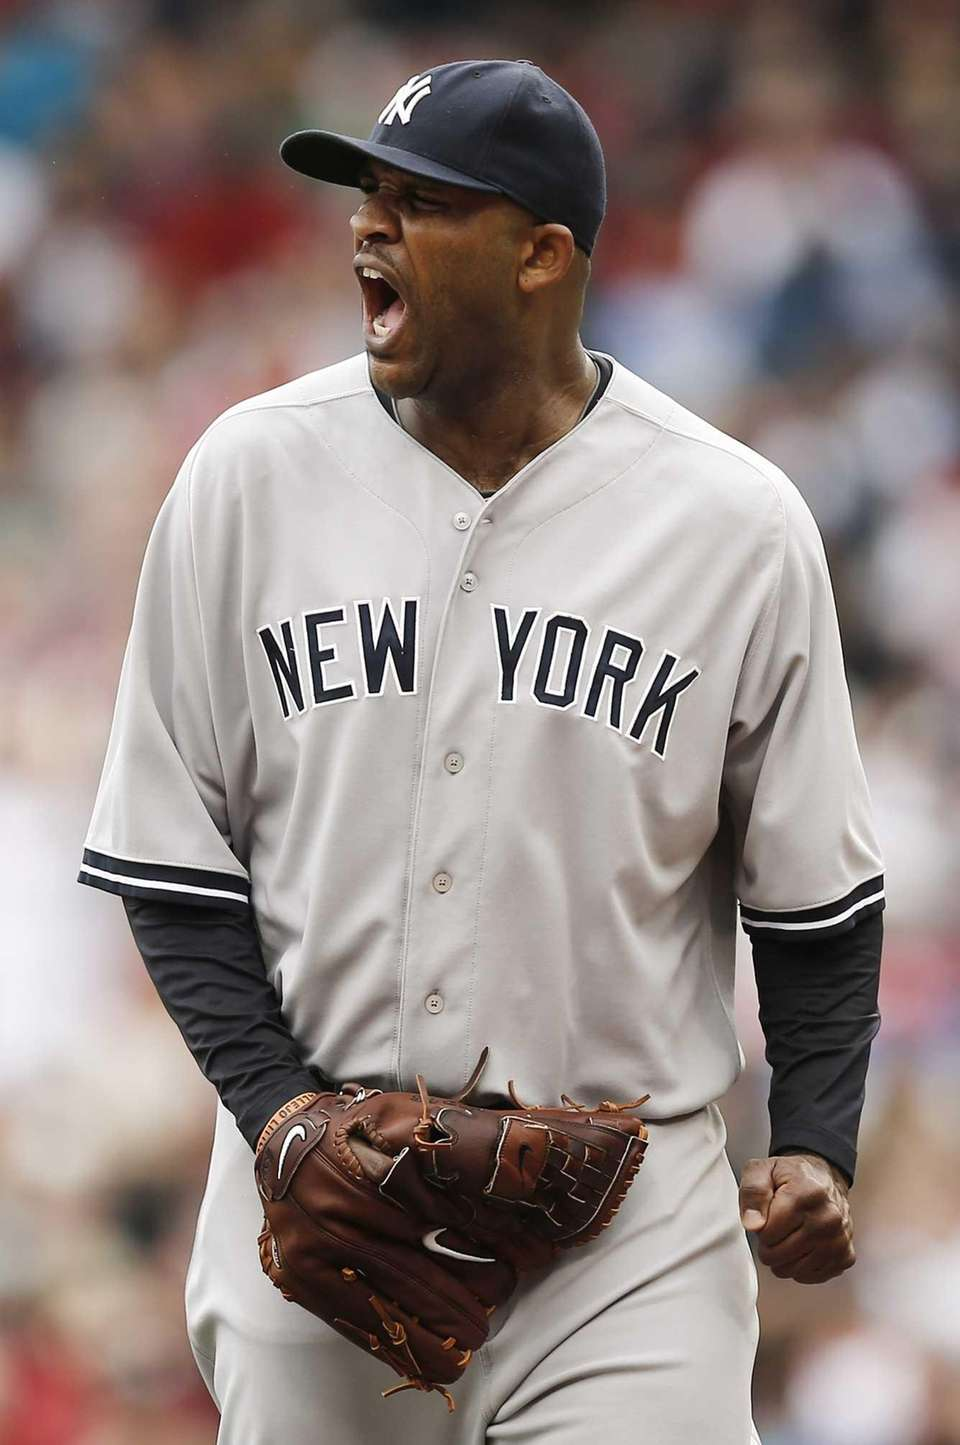 Yankees starting pitcher CC Sabathia shouts out while